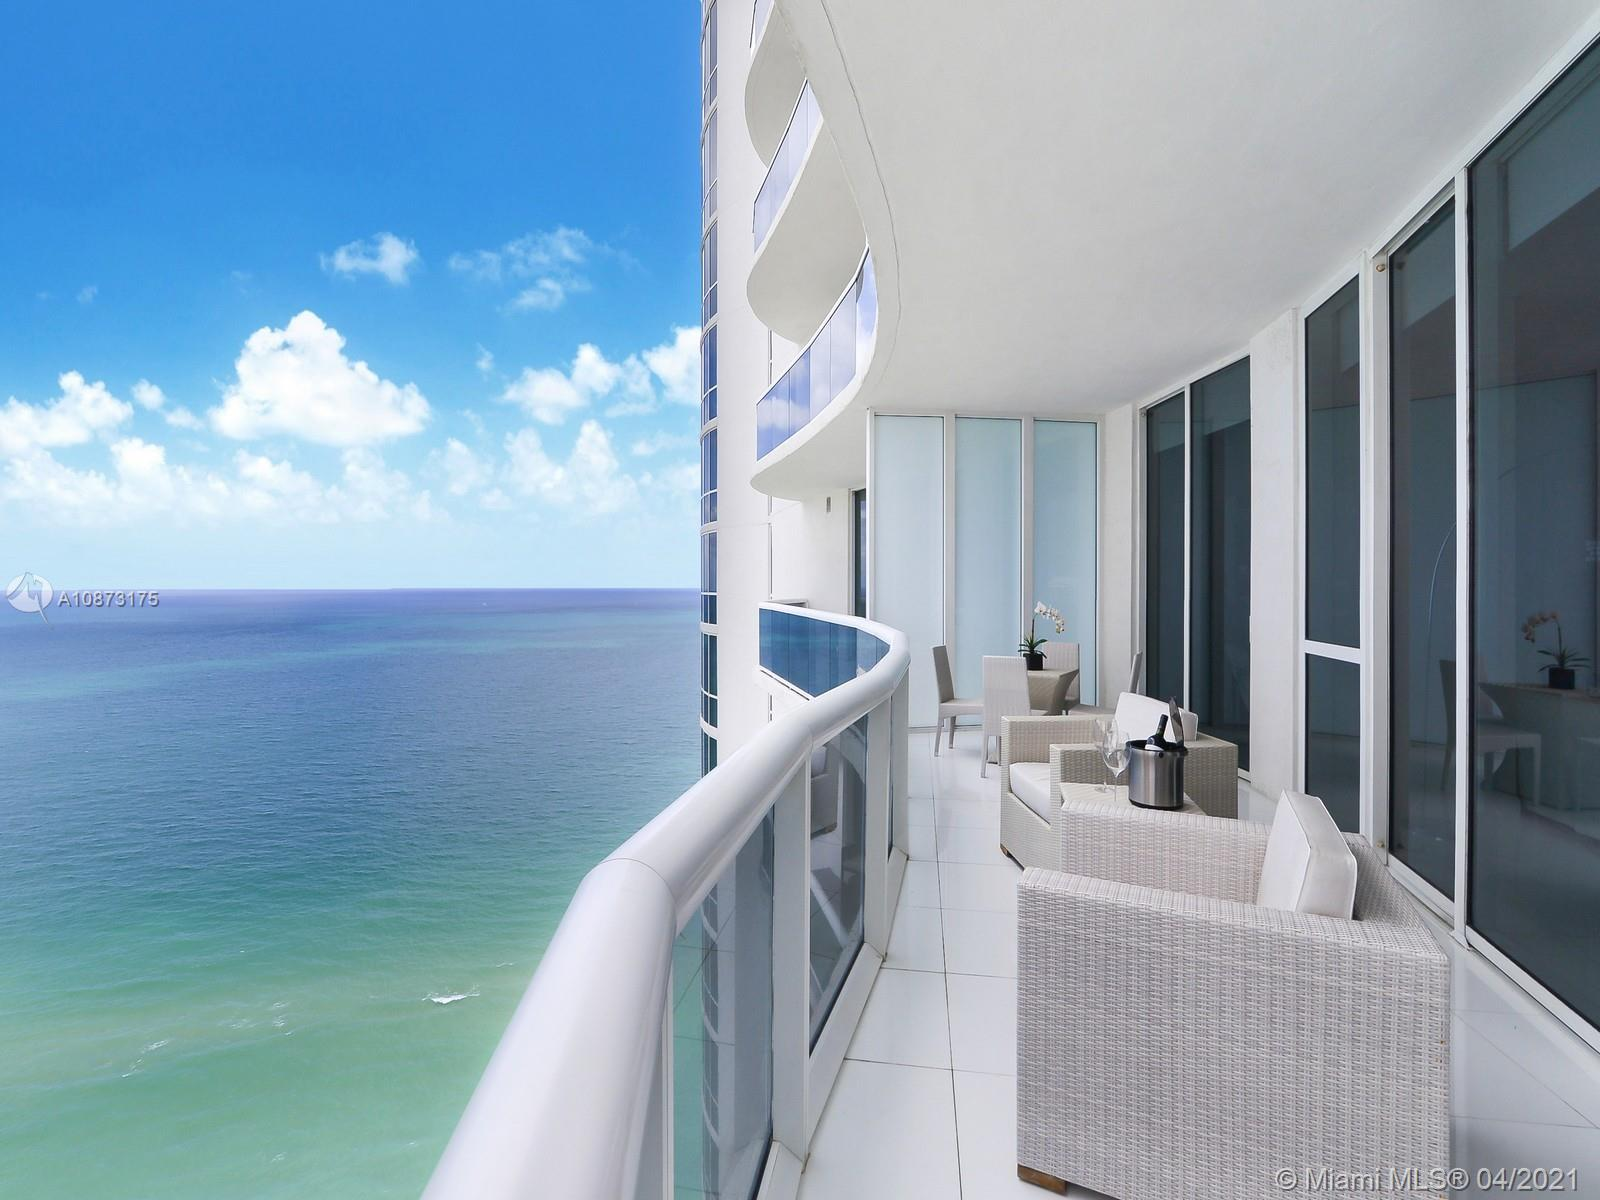 The best location along the beaches at the southernmost point of Sunny Isles Beach. This fantastic turn key residence features three bedrooms, three bathrooms, a powder room, private foyer entrance, top of the line appliances, and oversized balconies with panoramic views of the Atlantic ocean. Residents engage in an amenity-rich lifestyle in the building's fitness center overlooking the beach, SPA, recently remodeled restaurant, heated pool, and beach service. Unit is currently rented until June 2021, ideal for and Investor.